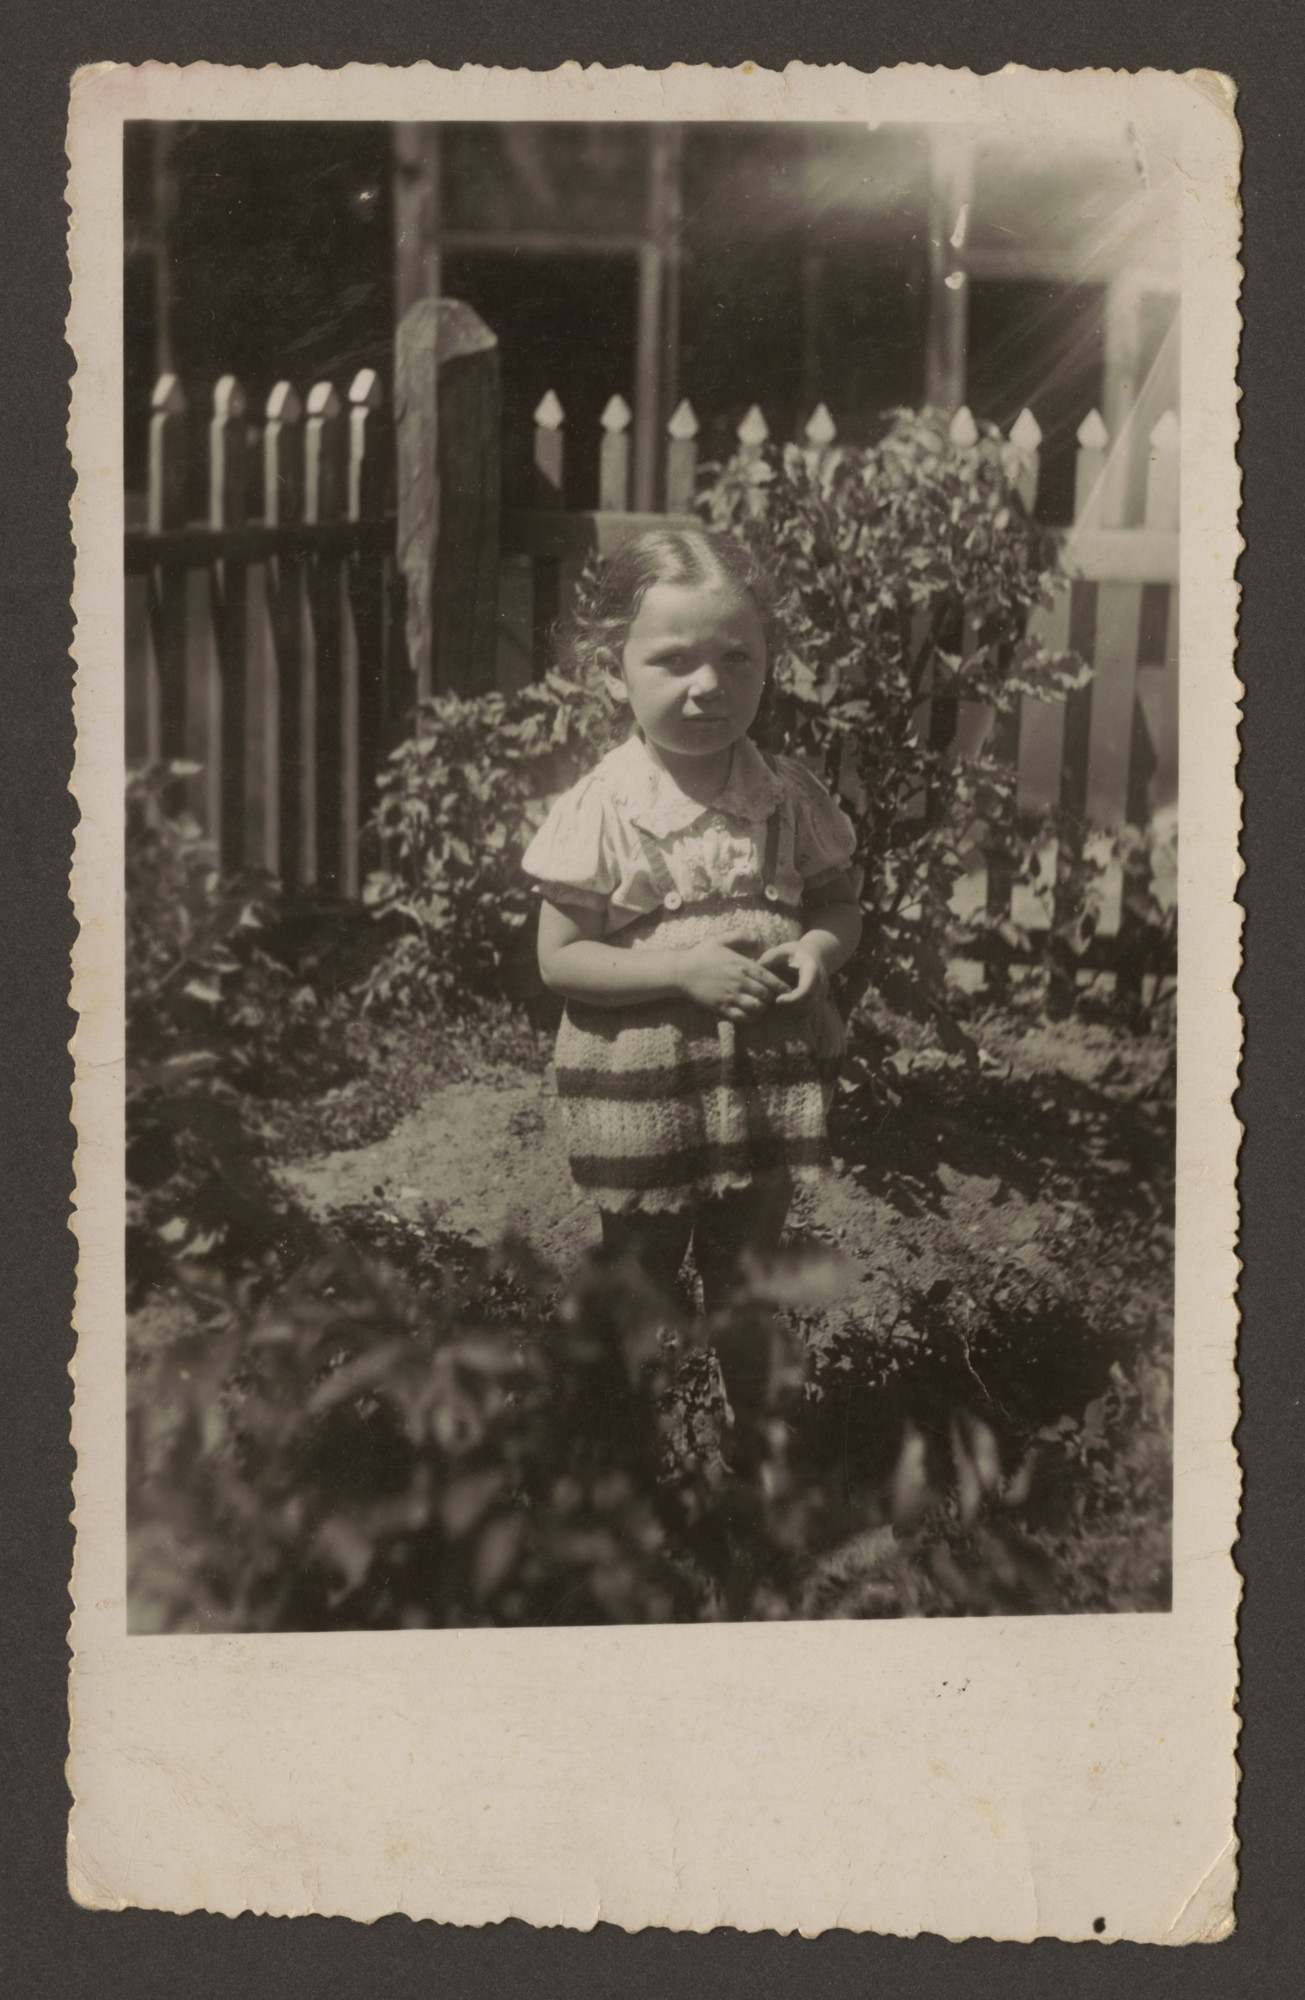 Minna Katz stands in her garden in prewar Lithuania.  She was the daughter of Yizhak and Manya Blacher Katz and half-sister of the donor.  Minna Katz died of medical complications shortly after the German invasion.